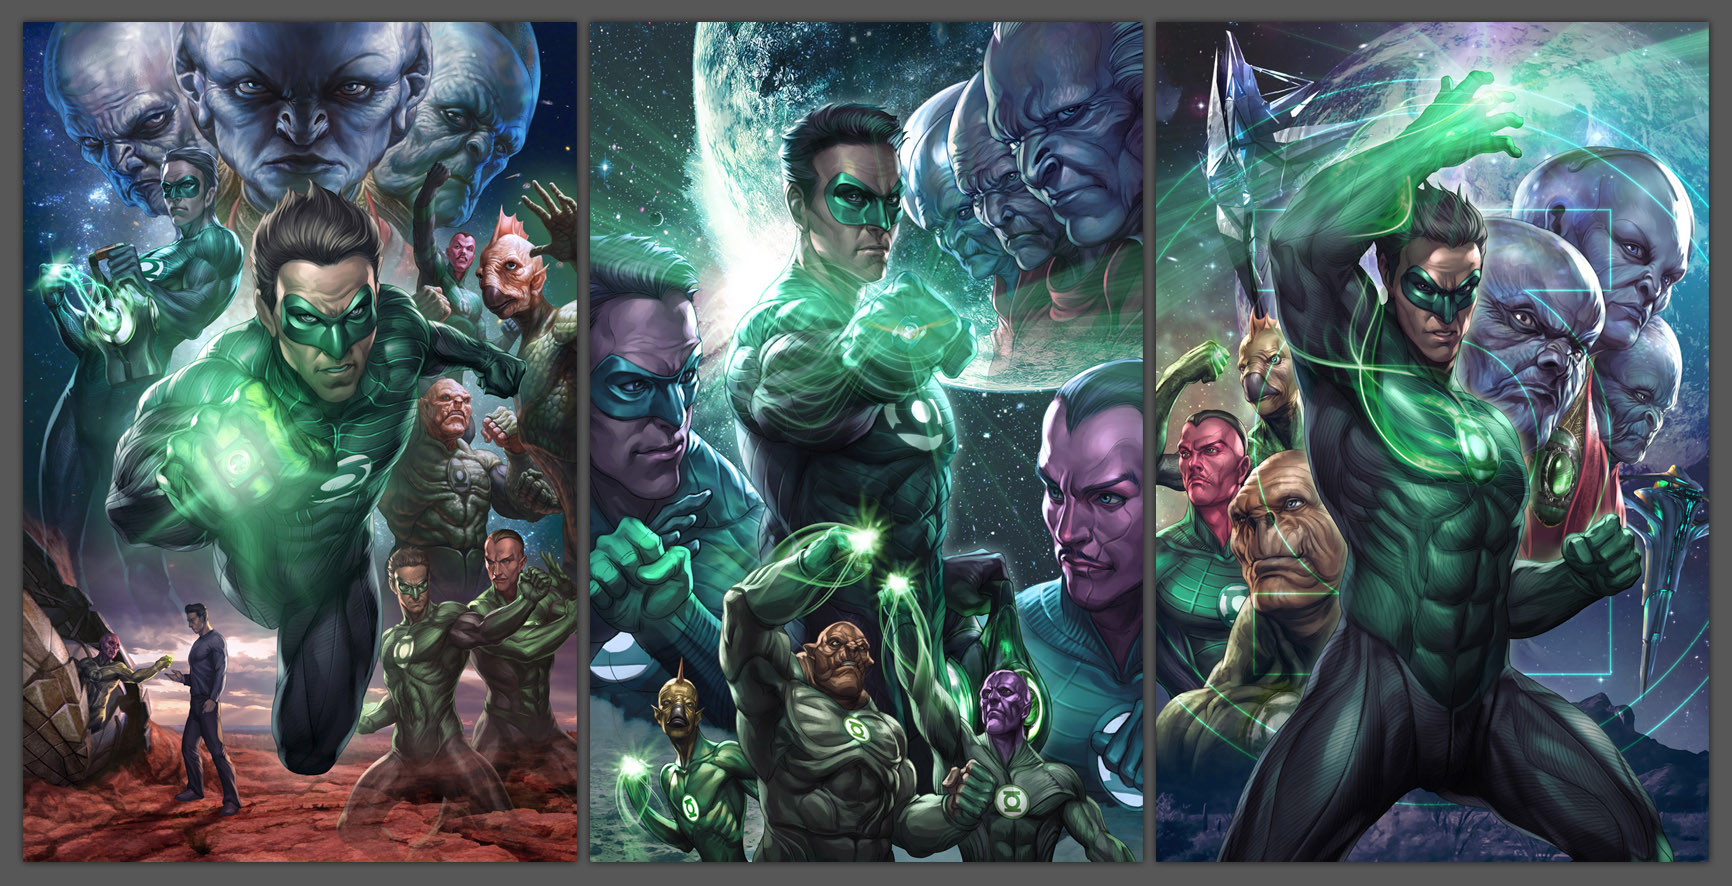 Green Lantern - Licensing Art by Artgerm on DeviantArt